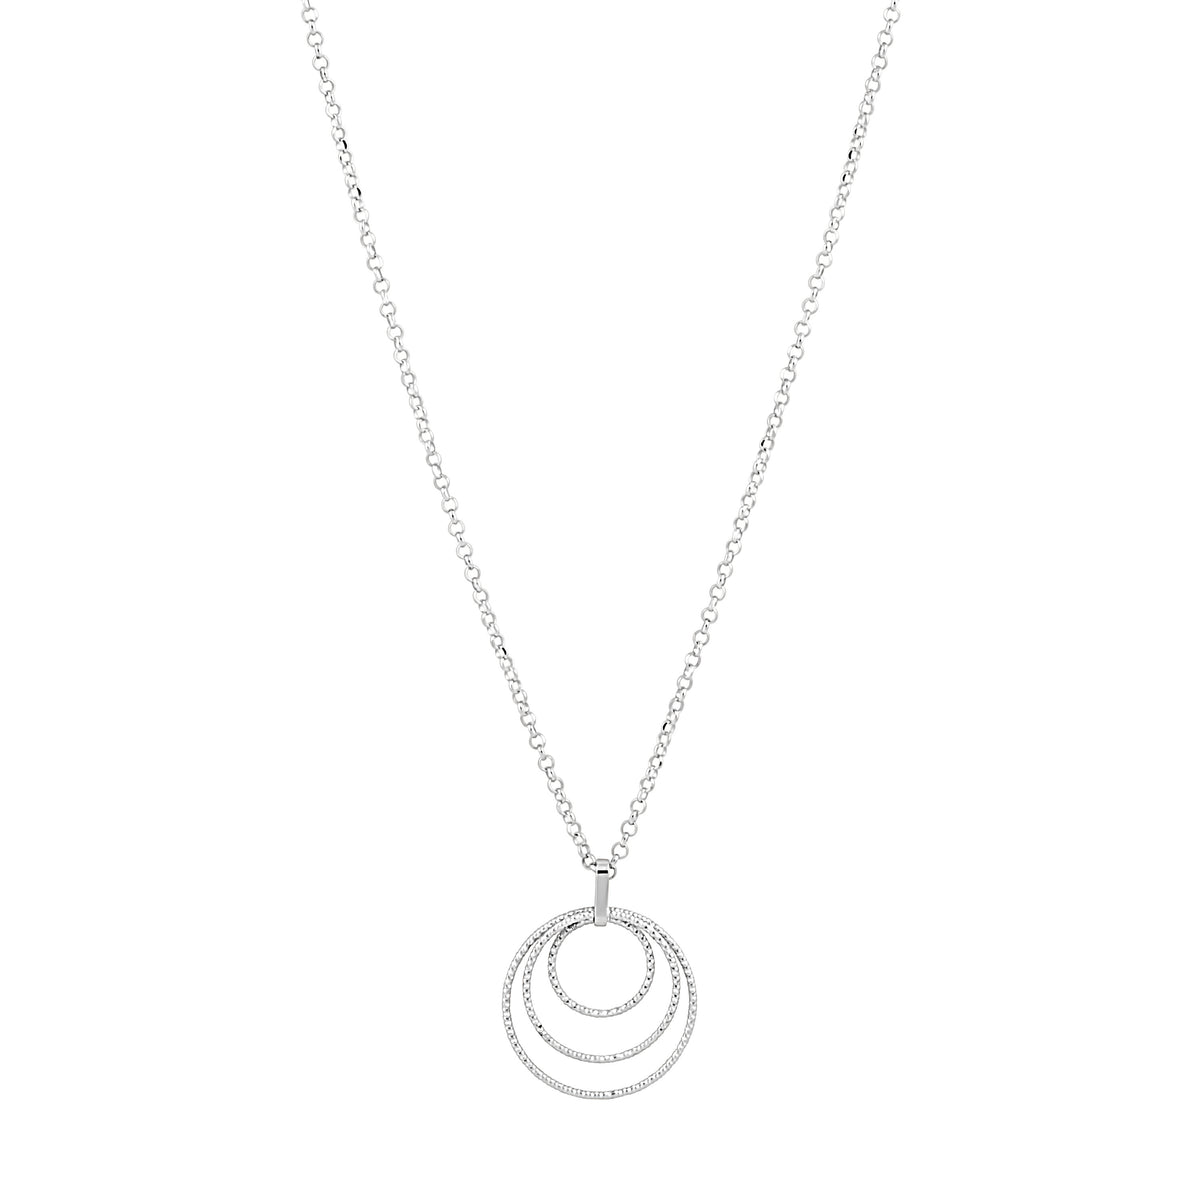 Idalia Jewelry - The Circle Trio Necklace - Silver